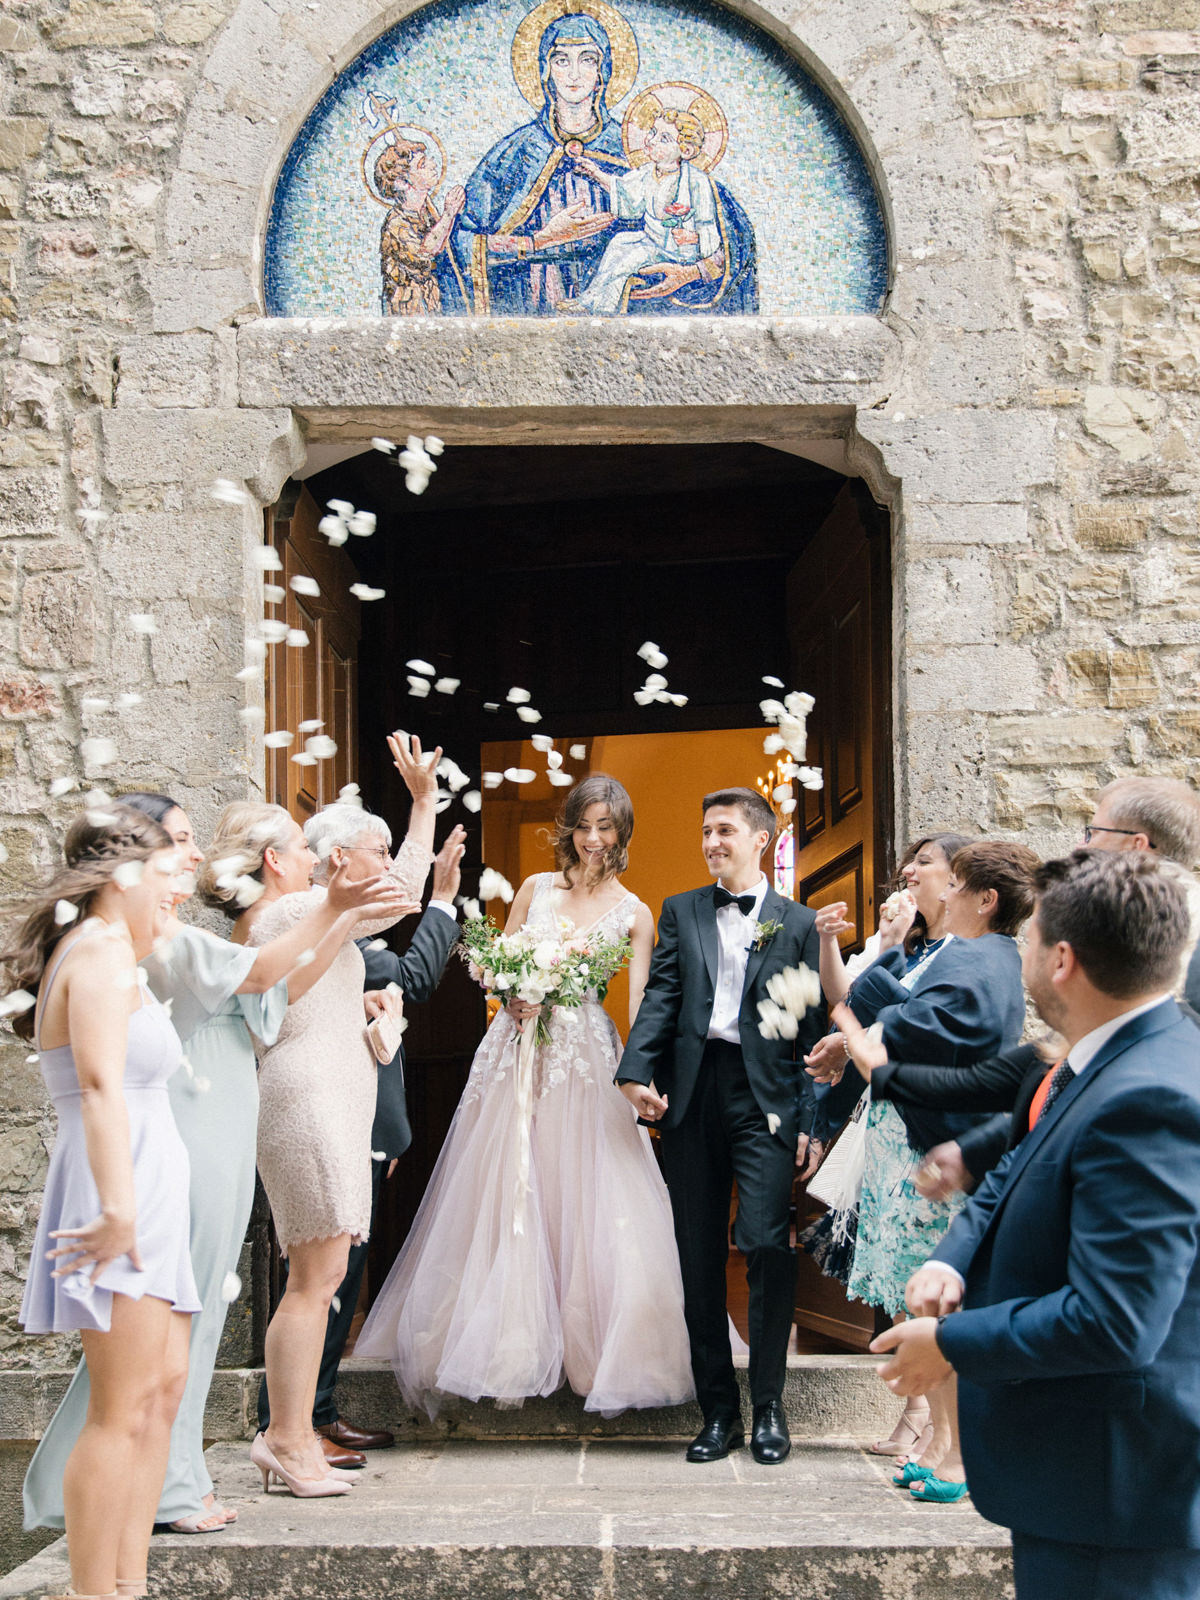 Best Fine Art Wedding Photography in Tuscany Italy - CHYMO & MOR